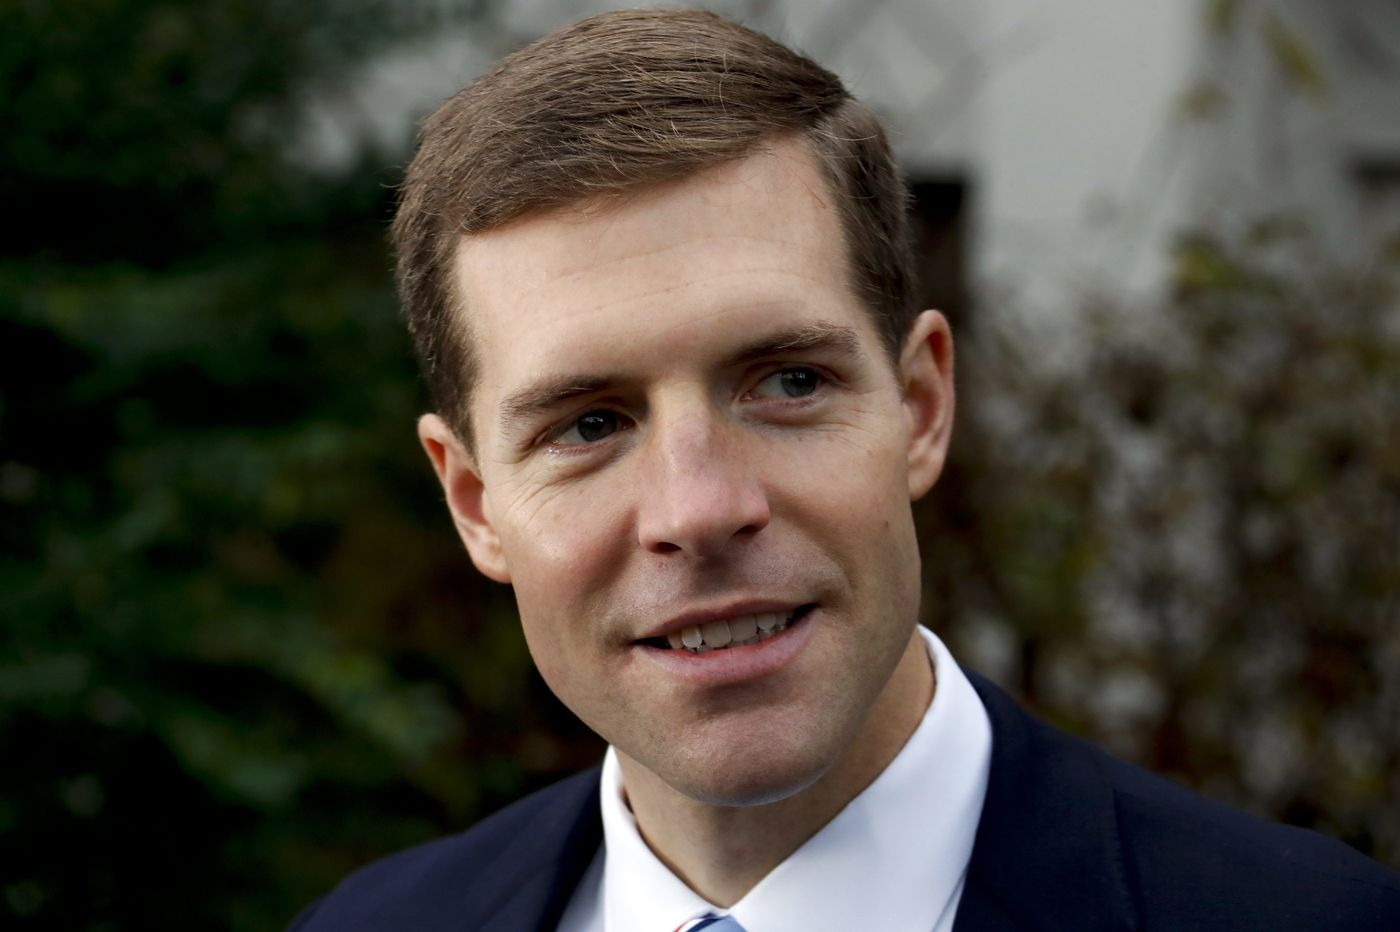 WATCH: Conor Lamb decries Republican 'lies,' leading to heated exchange during electoral vote certification